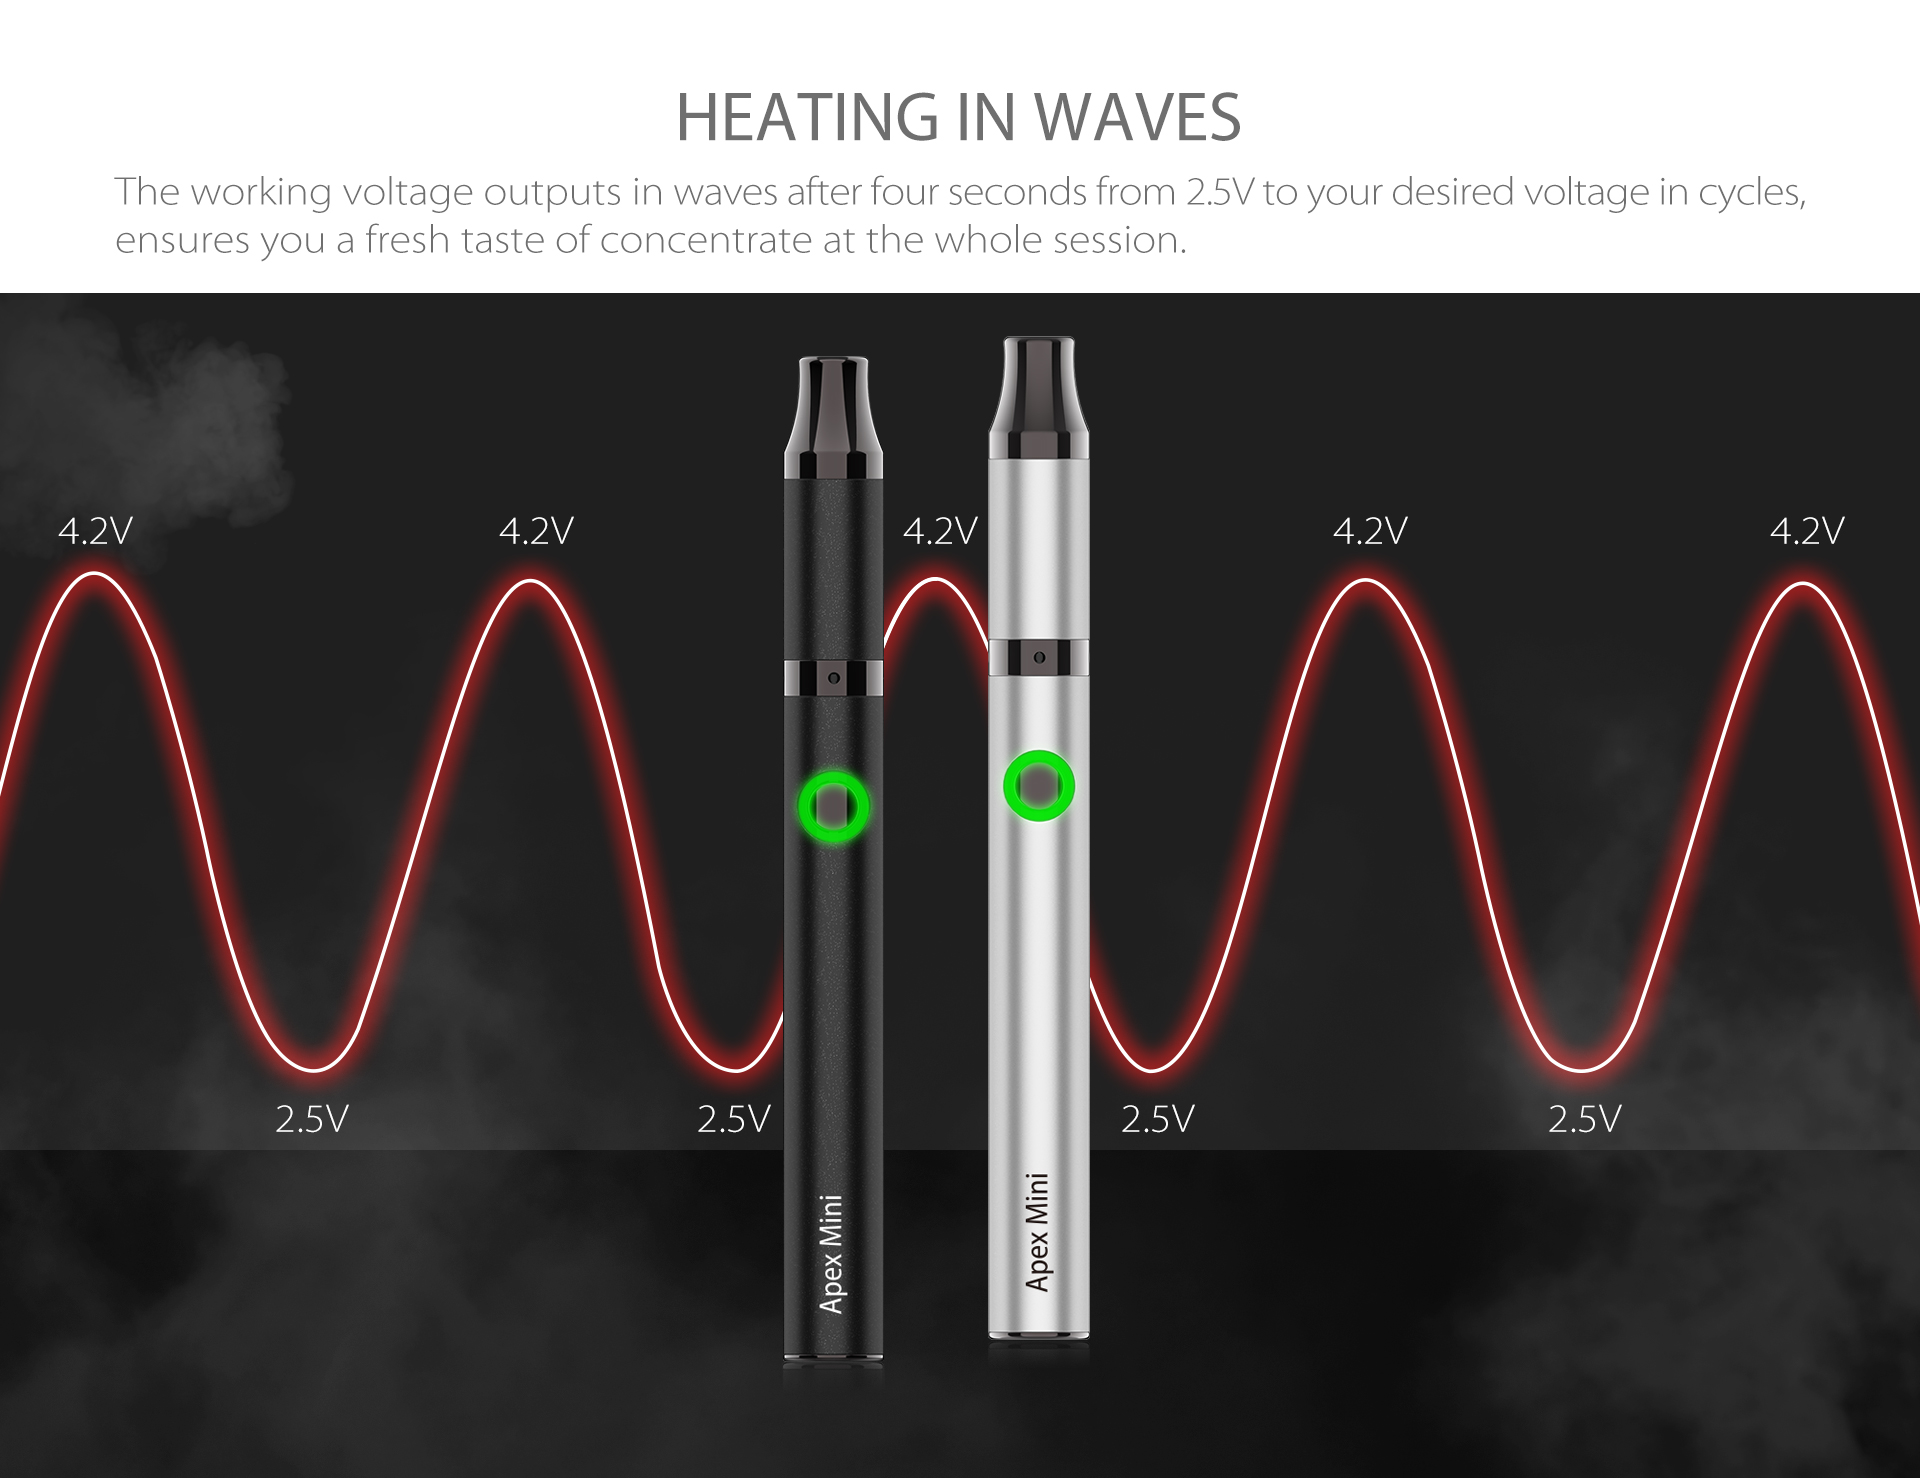 Yocan Apex Mini vape pen comes with heating in waves function.